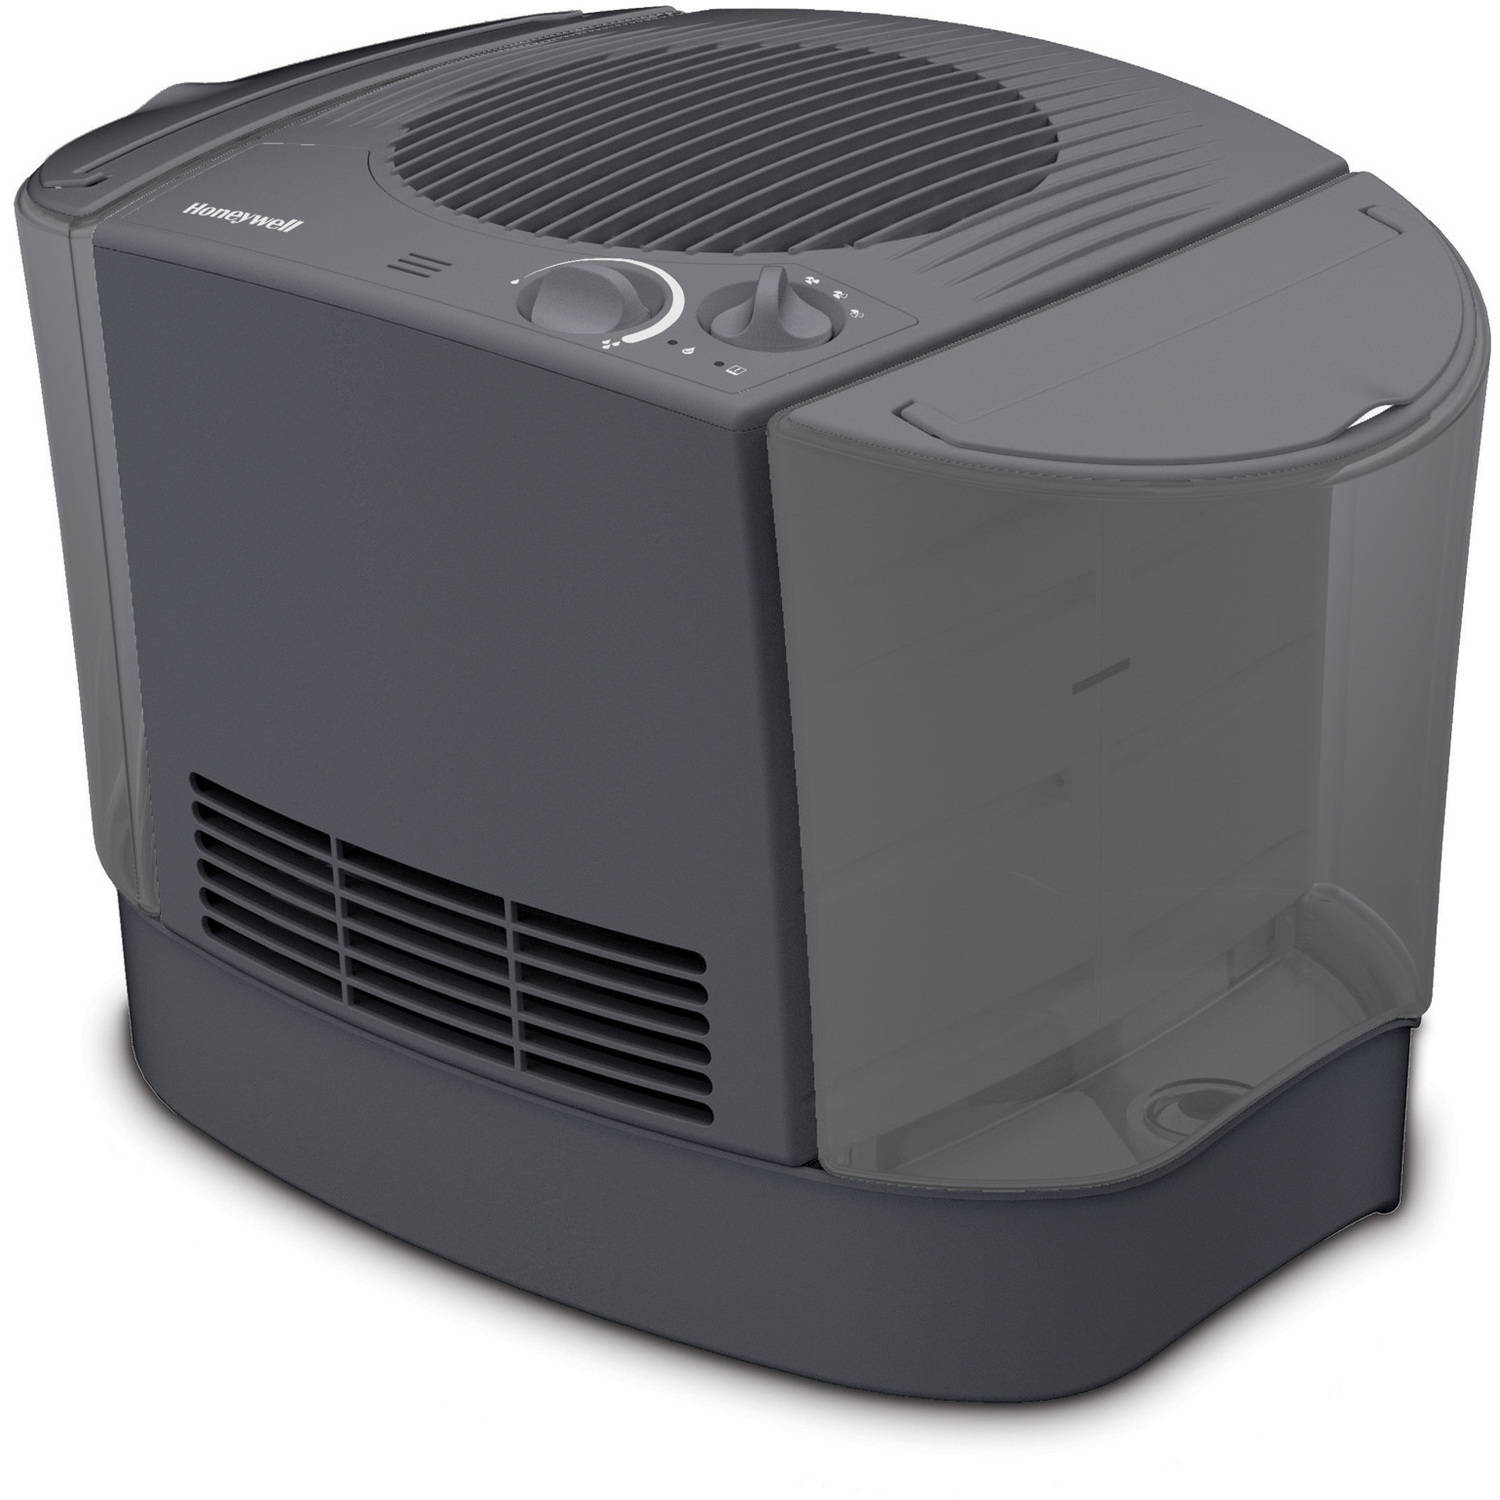 Honeywell Easy to Care Removable Top Fill Console Humidifier, Black, HEV680B